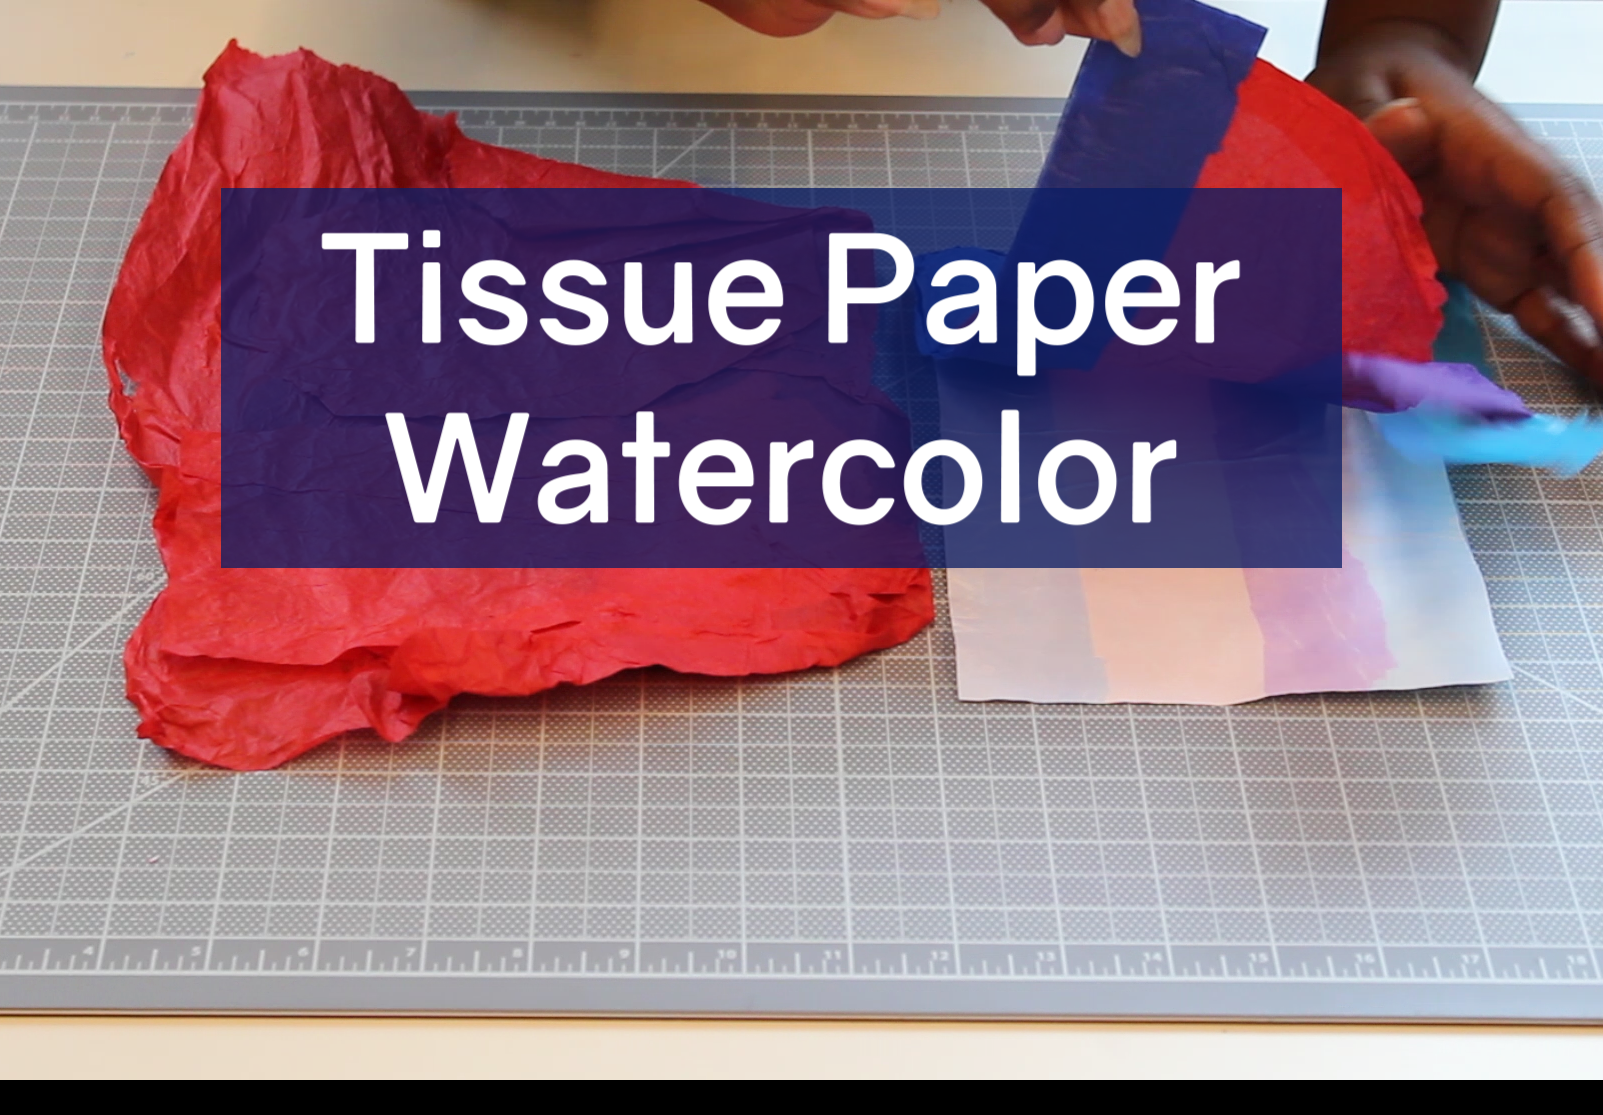 Tissue Paper Watercolor Cover Image Opens in new window